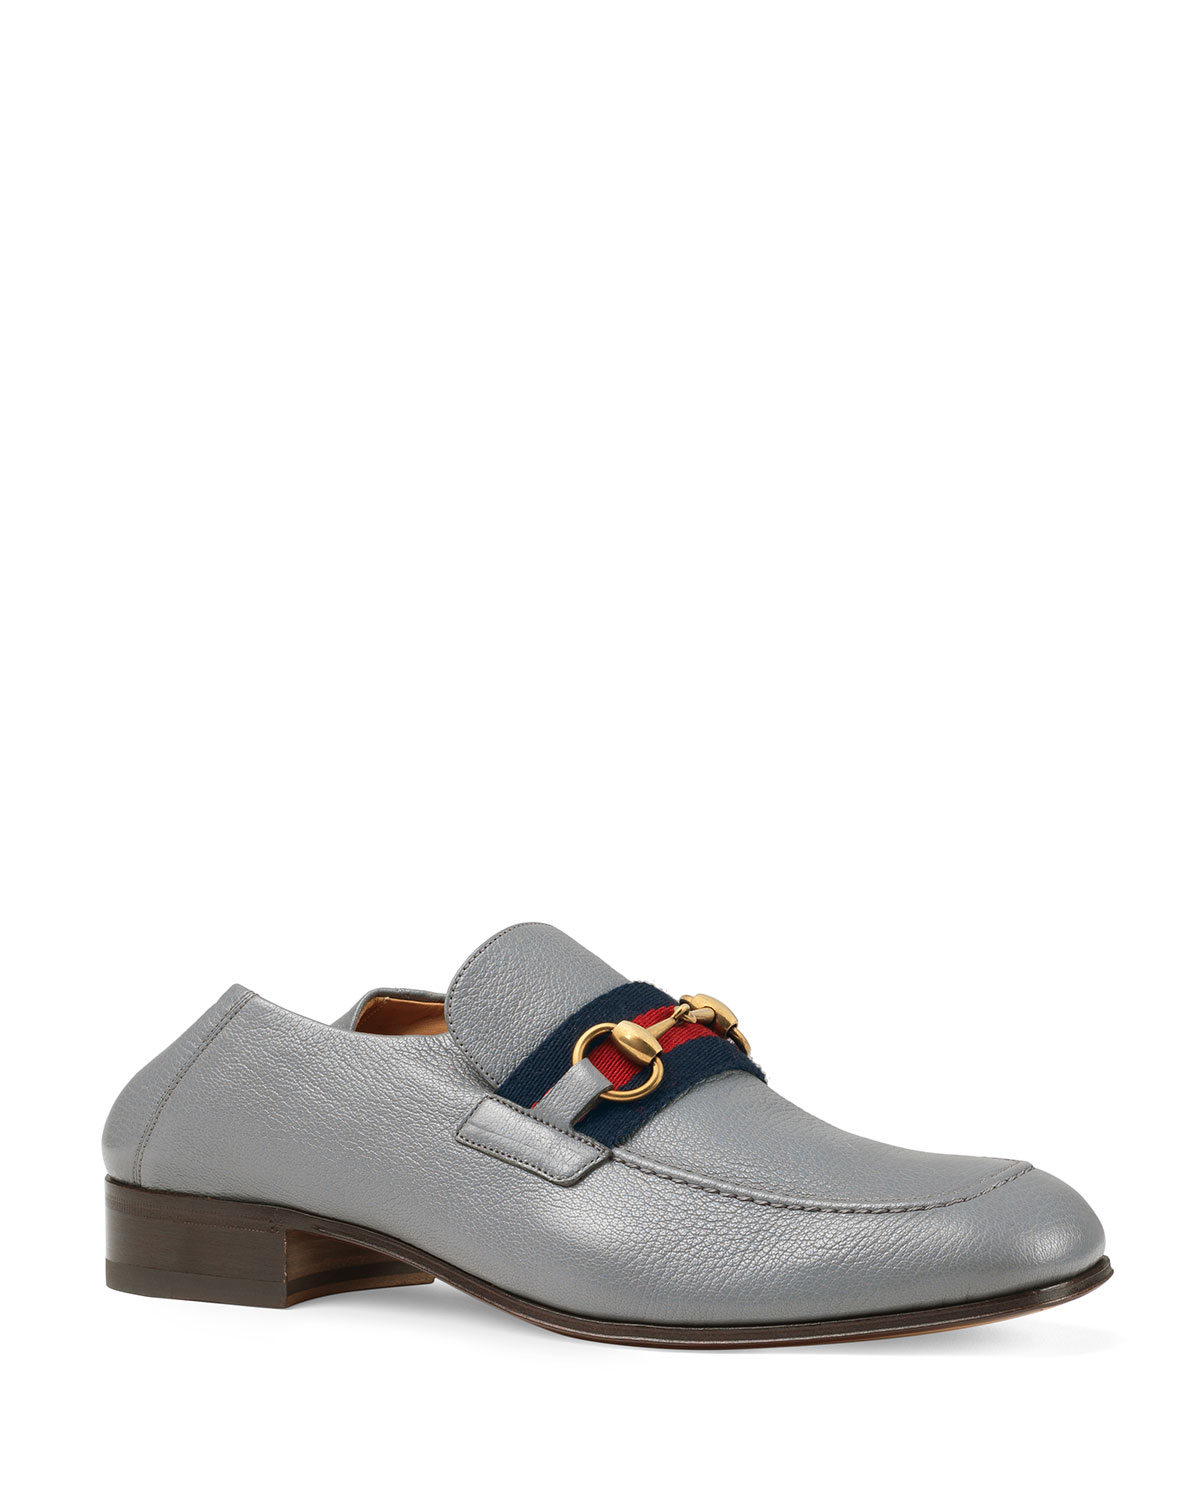 a01209f798f Gucci Men s Leather Horsebit Fold-Down Loafers